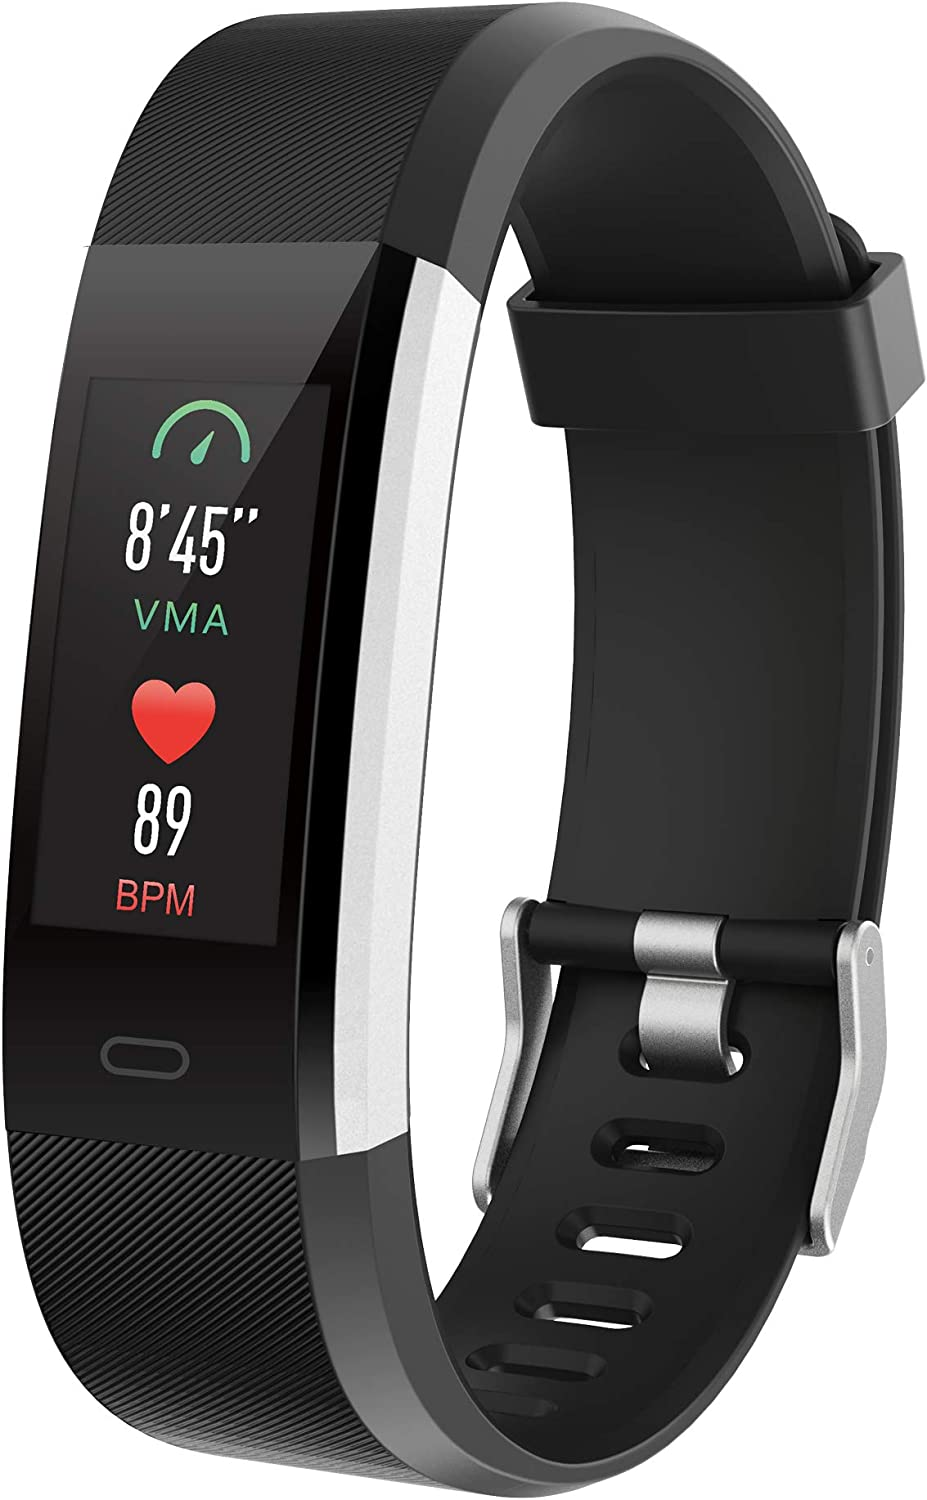 spitilo Fitness Tracker with Heart Rate Monitor,50m Waterproof Multisport GPS,Smart Wristband Watch for iOS Android